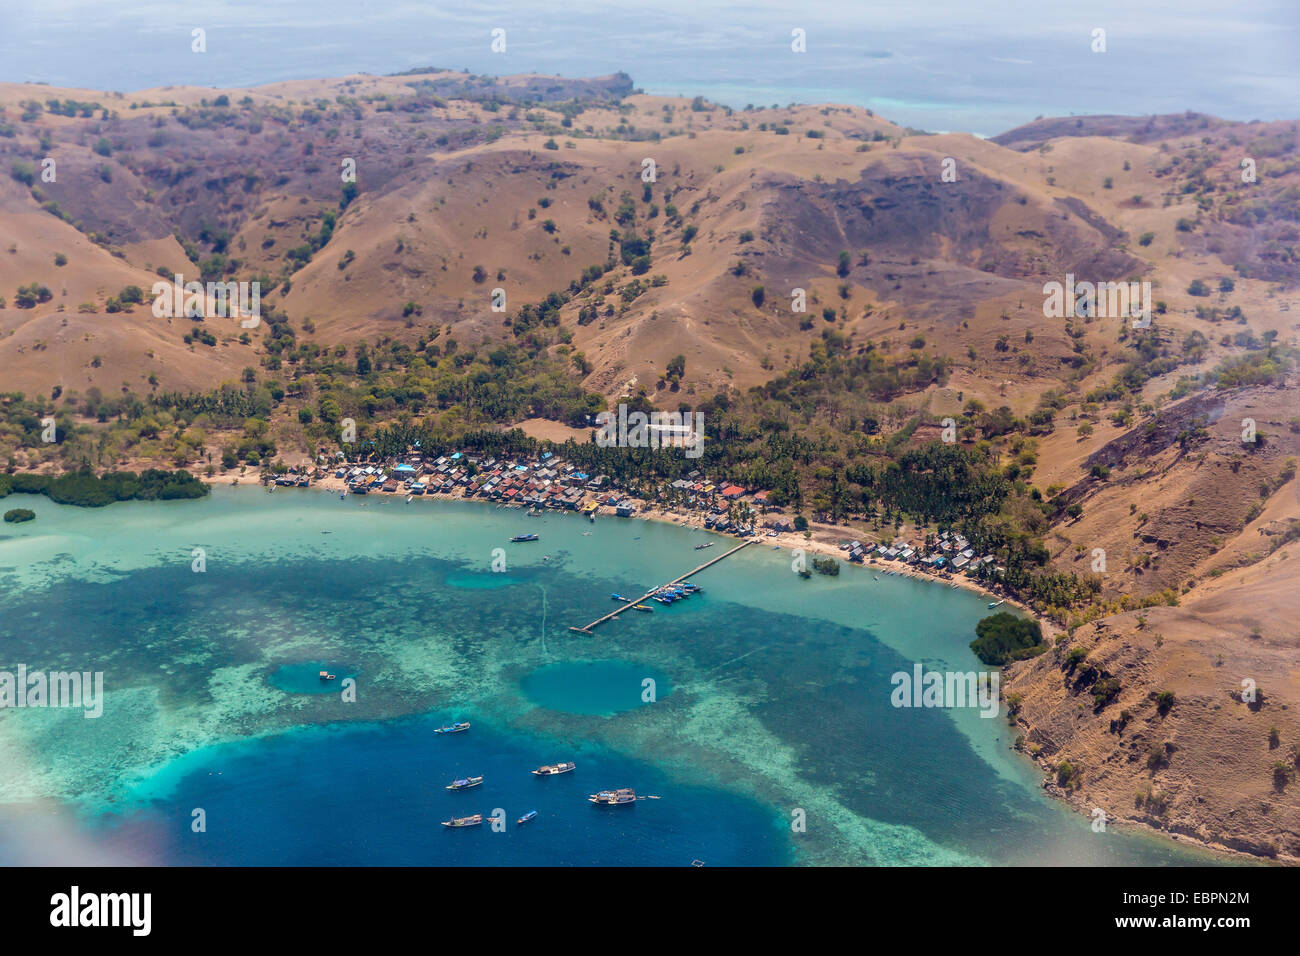 Harbor at Labuan Bajo, Flores Island, Indonesia, Southeast Asia, Asia - Stock Image